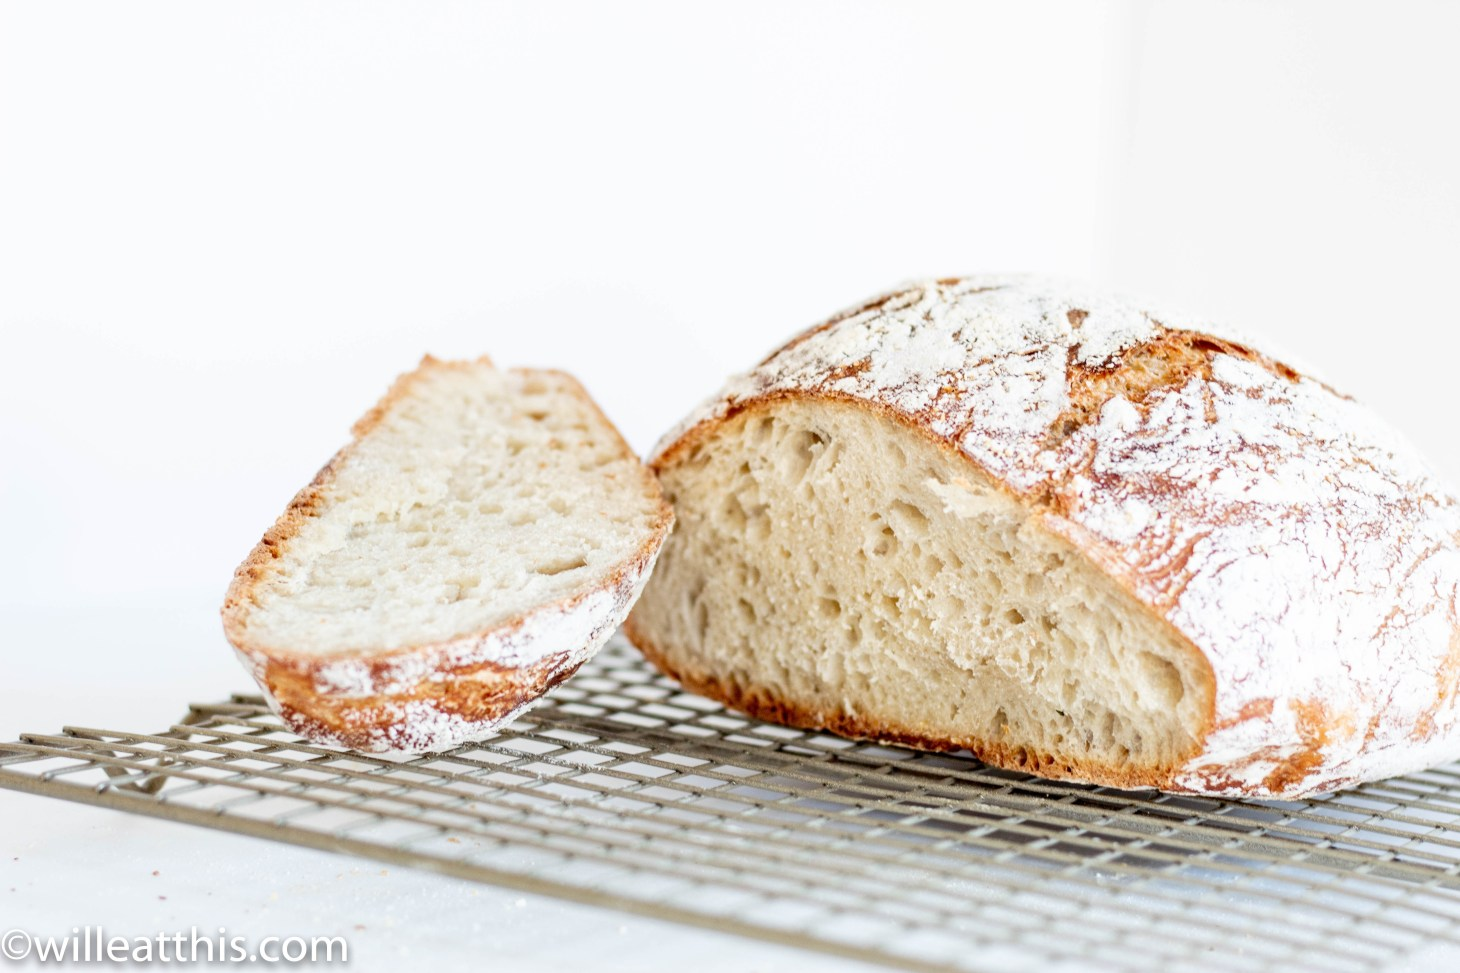 A loaf of knead bread with a slice beside it on a mesh rack